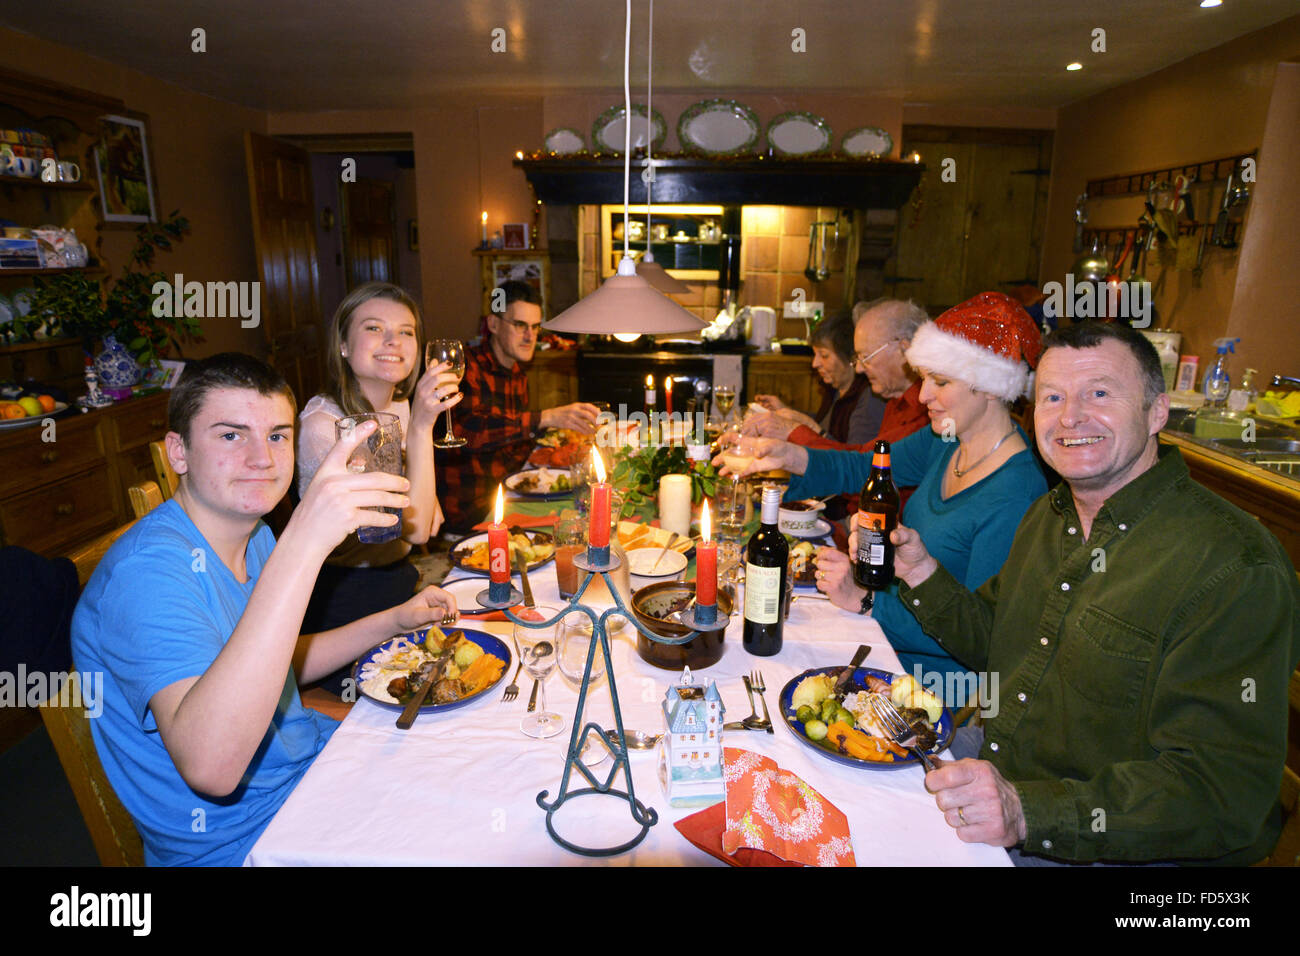 Traditional Christmas dinner for the family, 3 generations eat together turkey and all the trimmings. UK - Stock Image